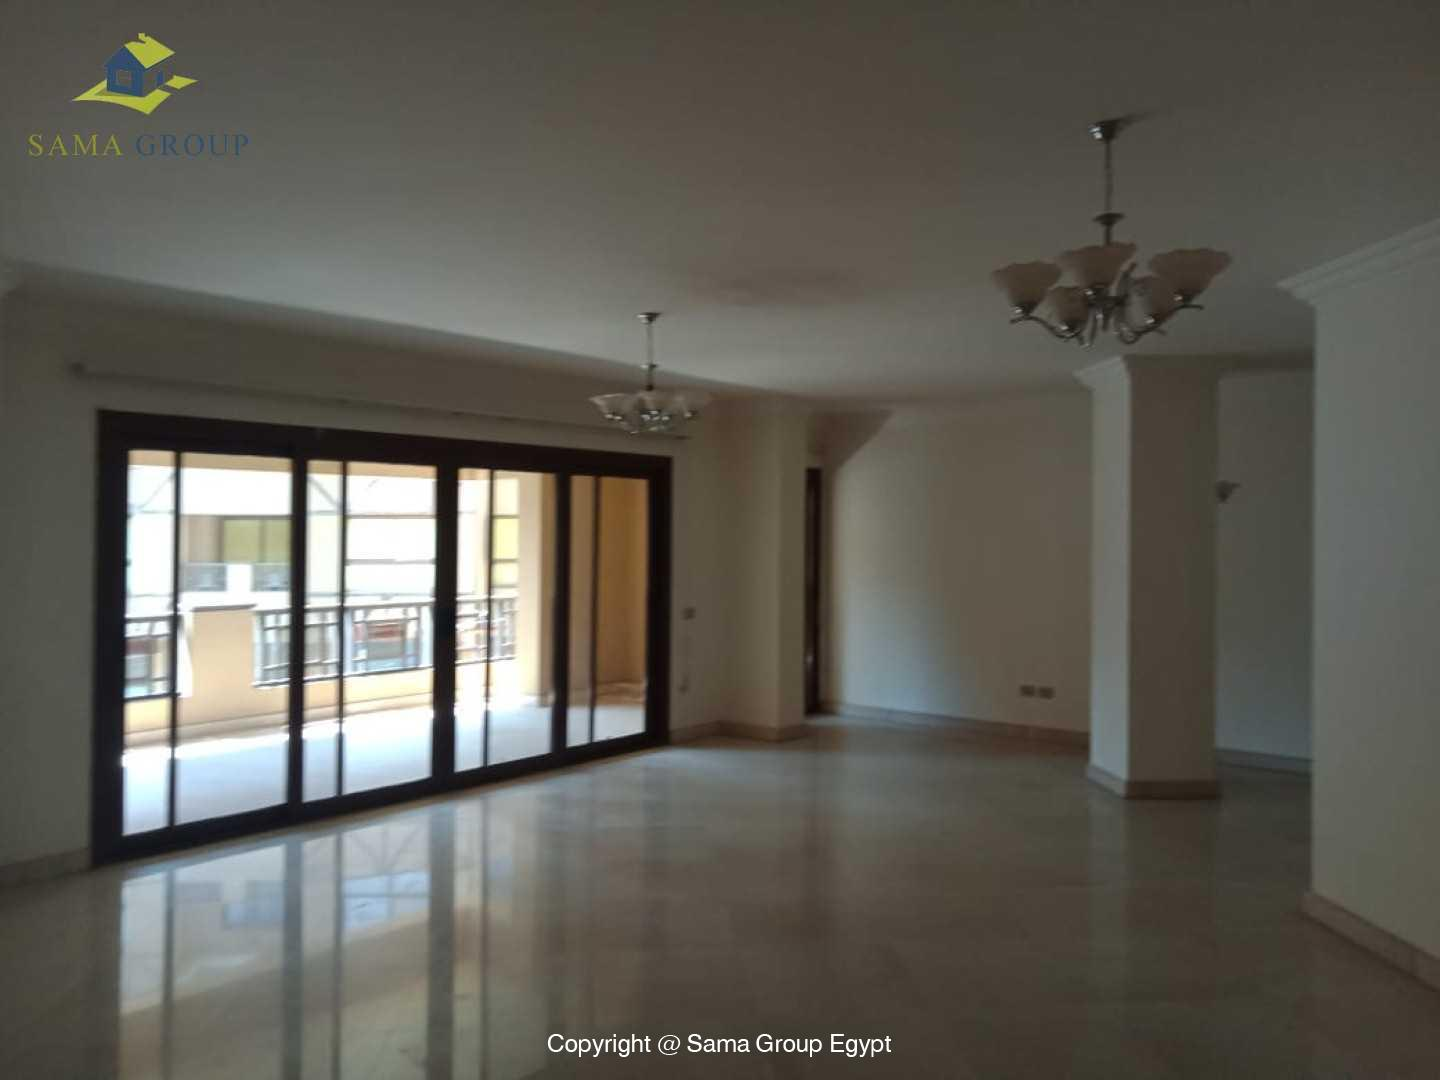 Semi Furnished Apartment For Rent In Maadi Sarayat,Semi furnished,Apartment NO #9